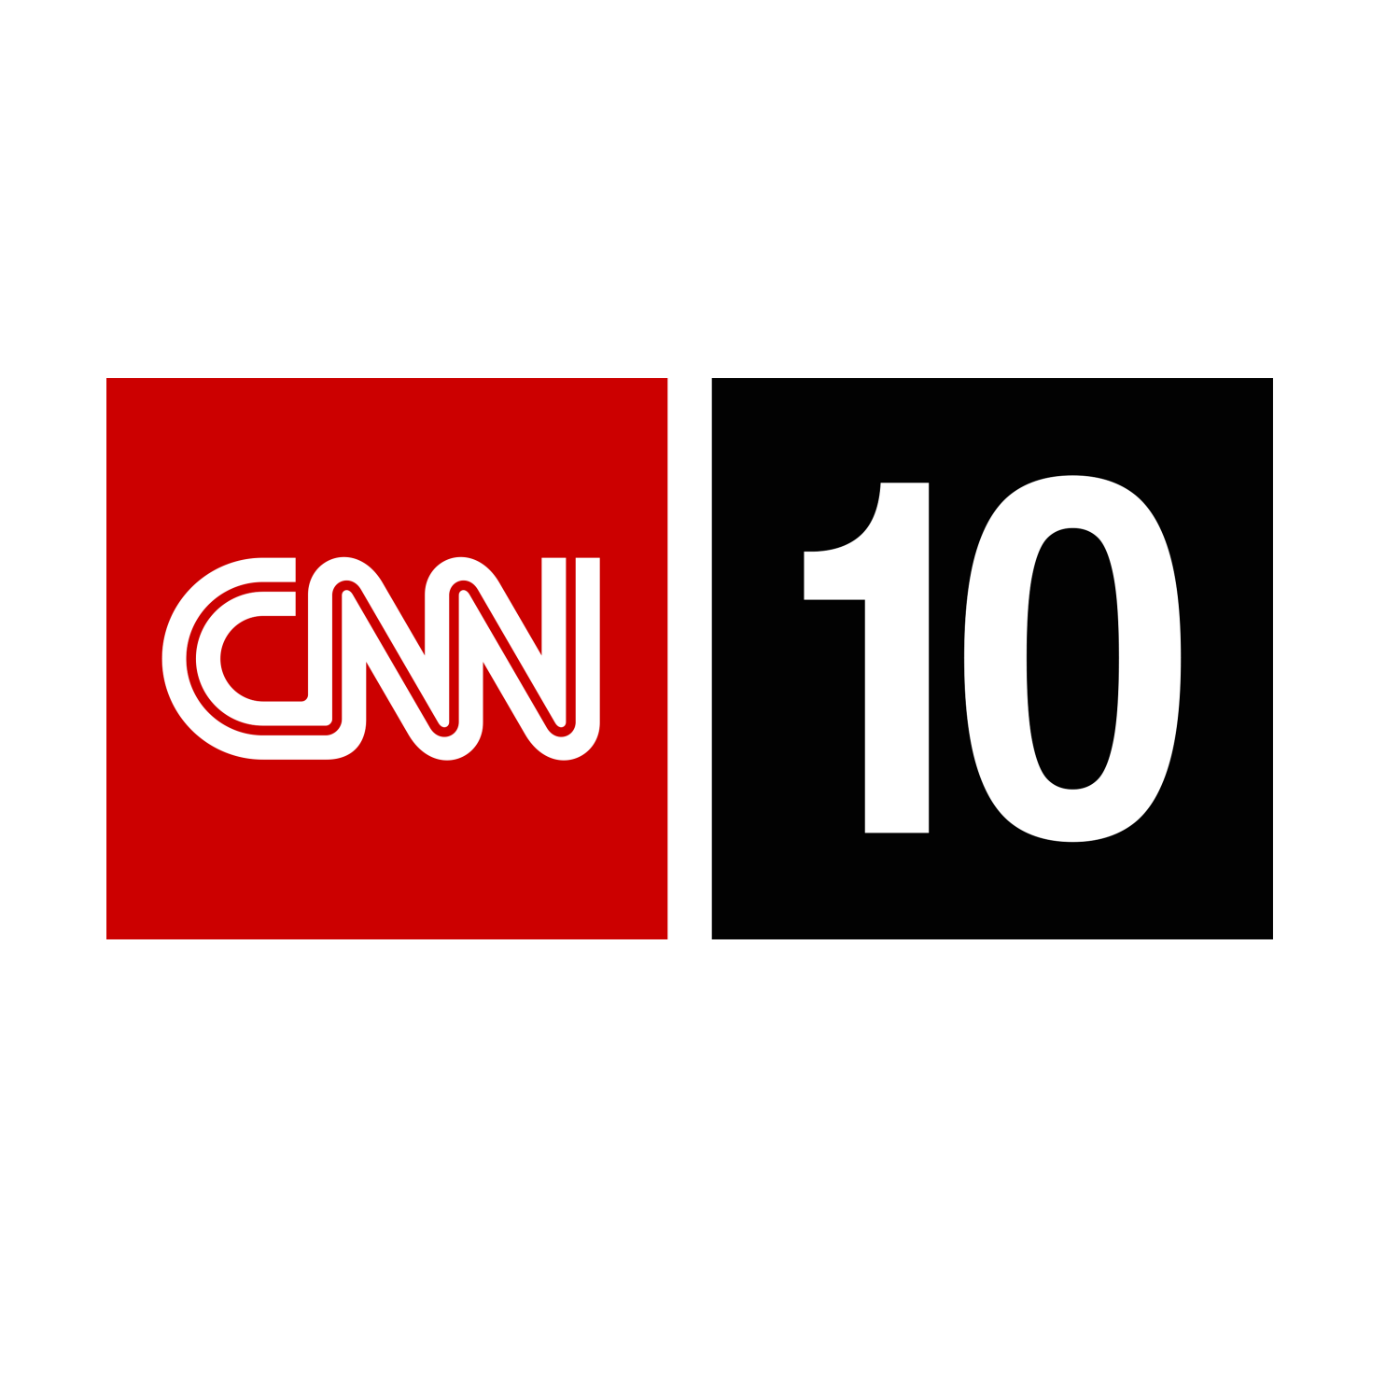 CNN Student News - March 15, 2013